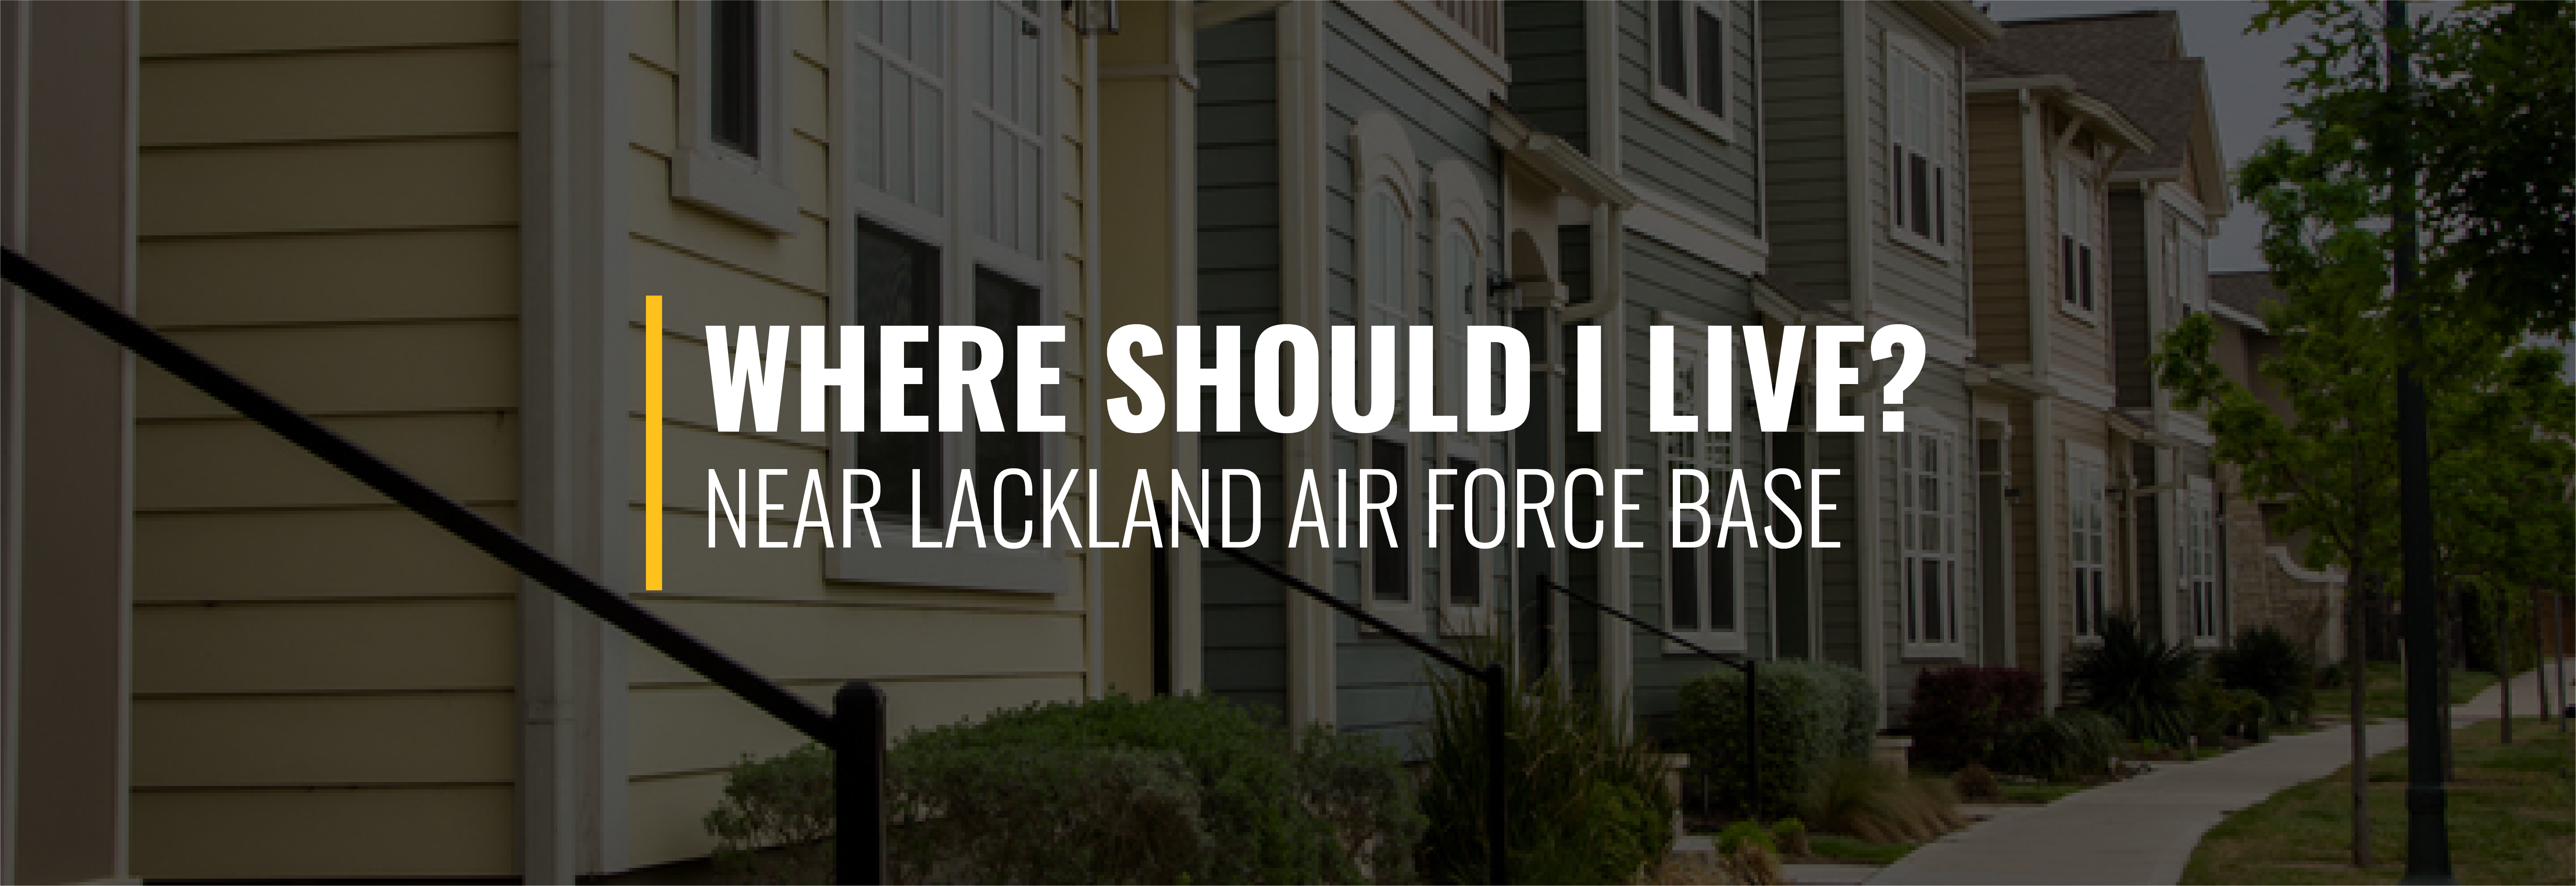 Where Should I Live Near Lackland Air Force Base?